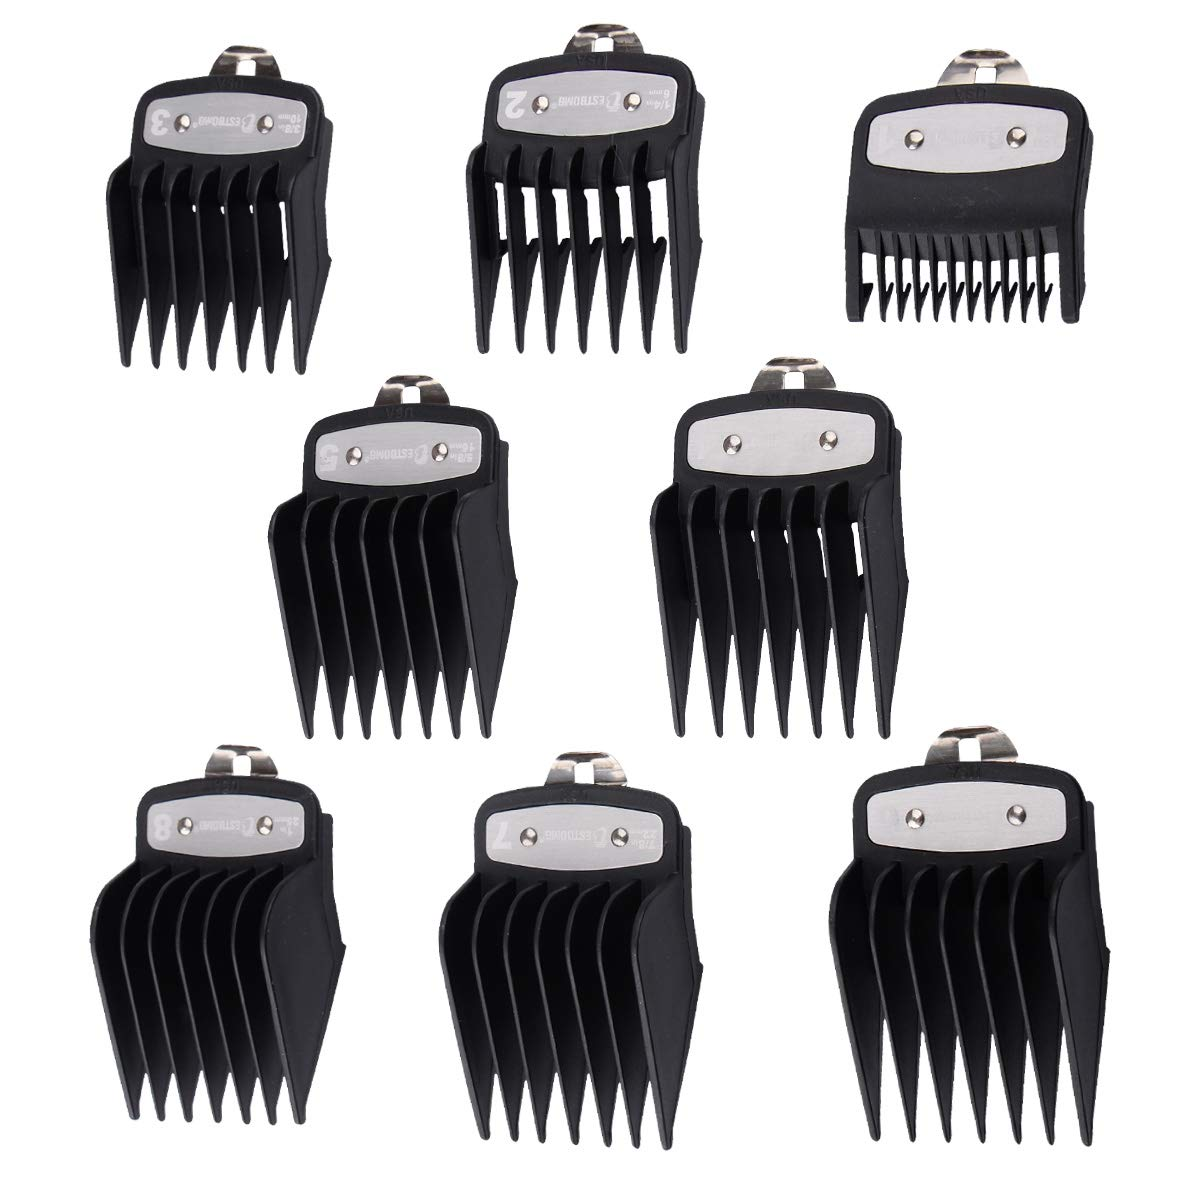 "8Pcs Black Professional Hair Clipper Combs Guides #3171-500 – 1/8"" to 1"" for Full Size Standard Adjustable Wahl Clippers,Black"